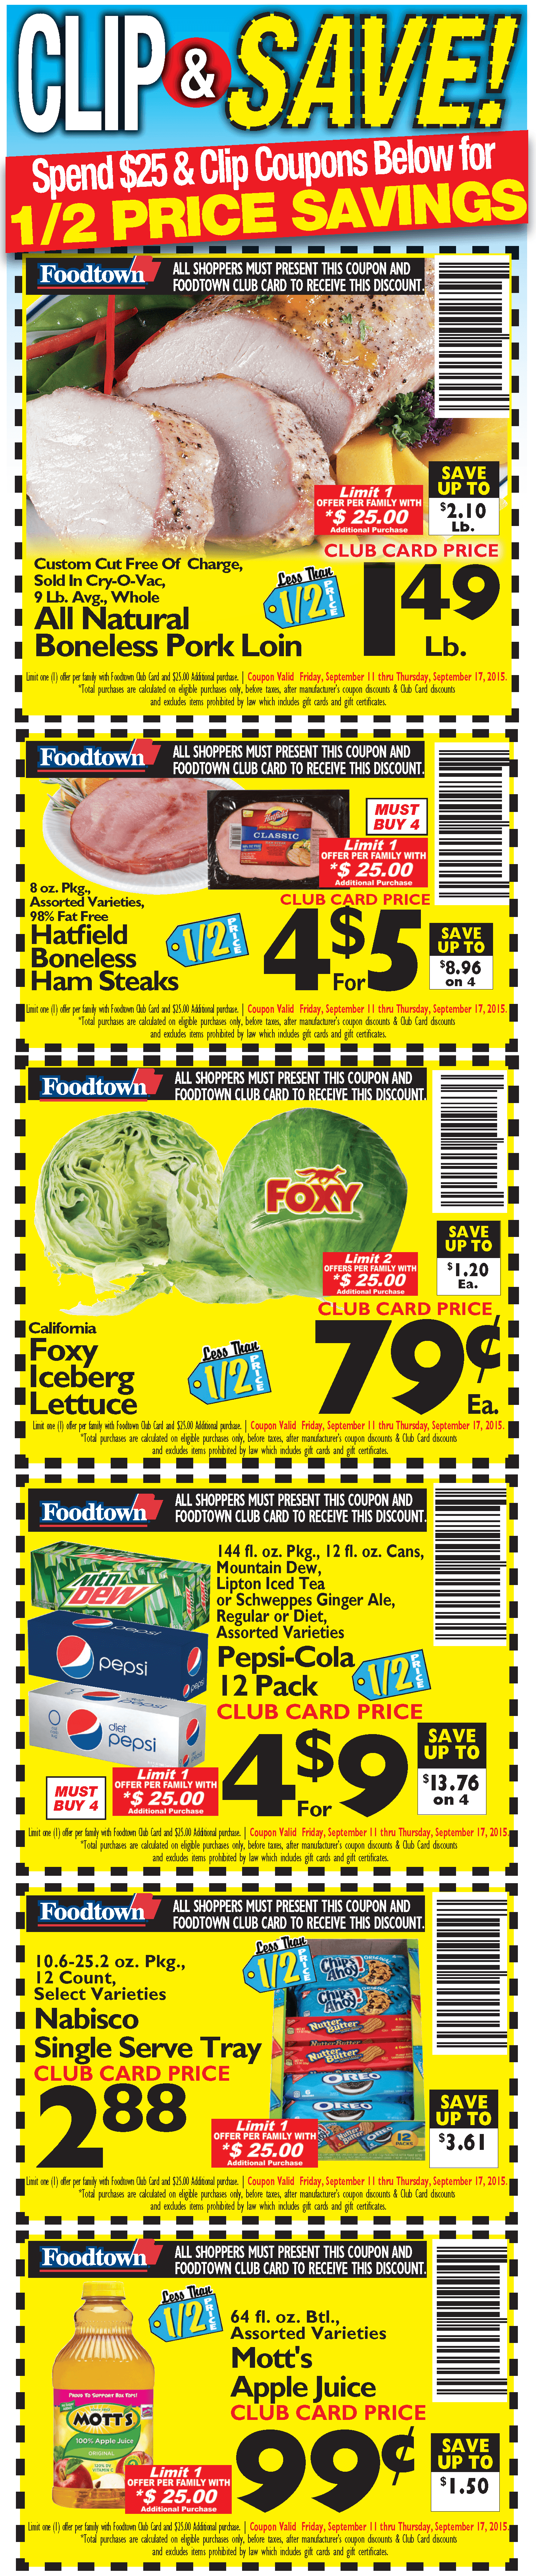 Clip & Save Coupons